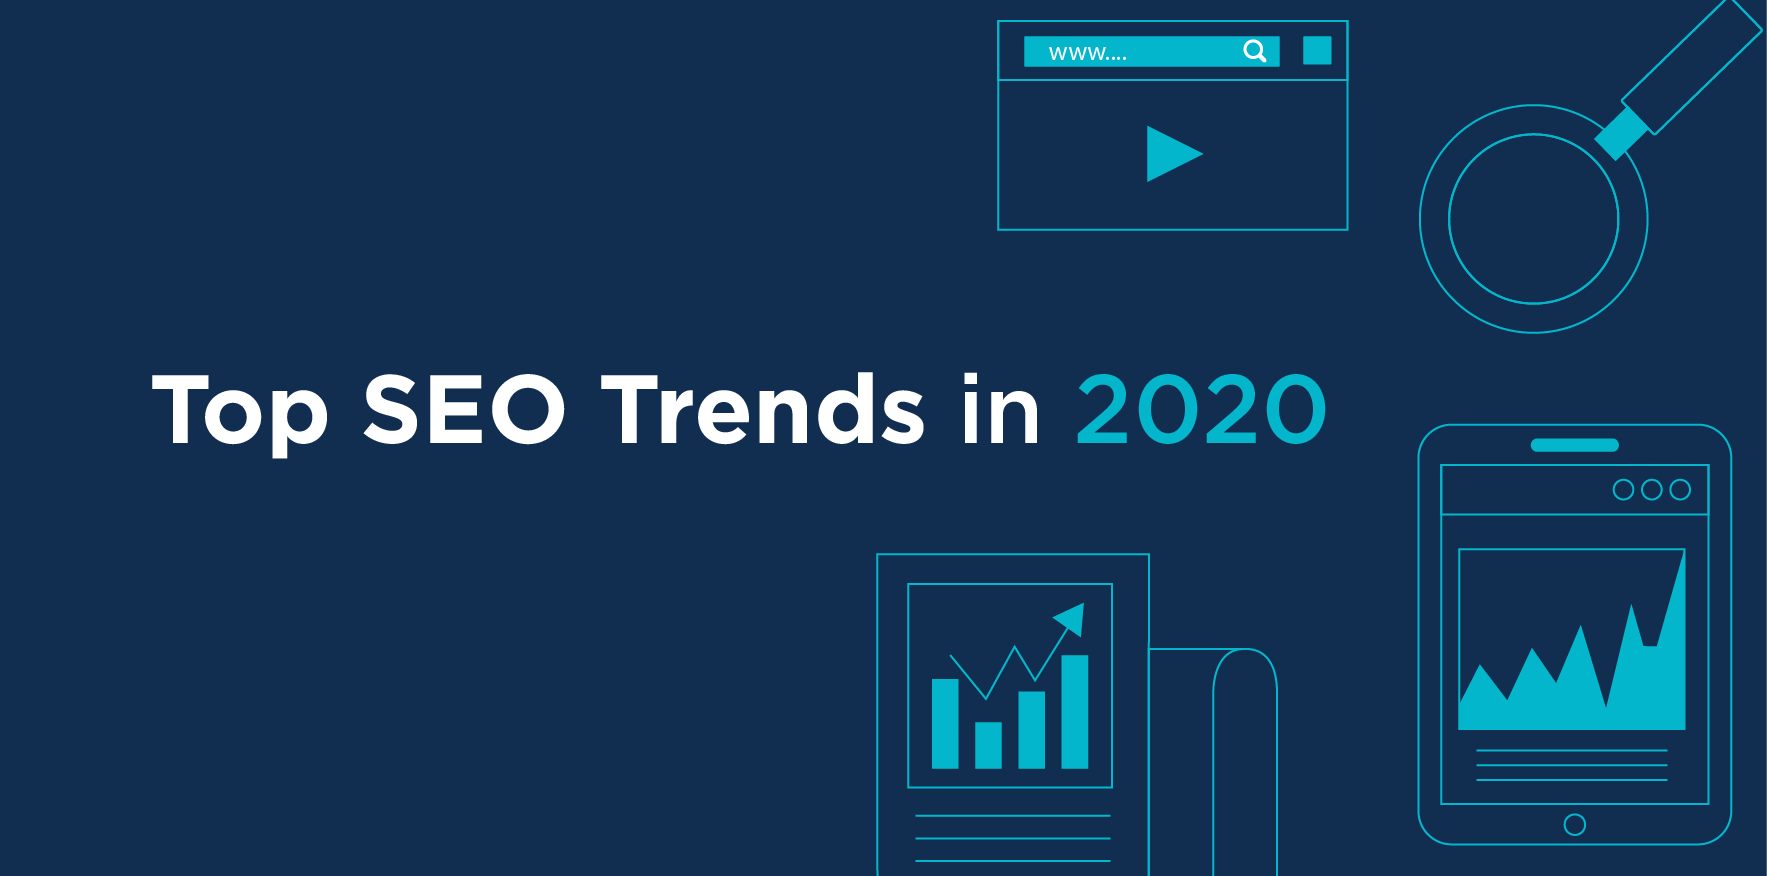 Top SEO Trends in 2020 That Digital Marketers Should Be Aware of